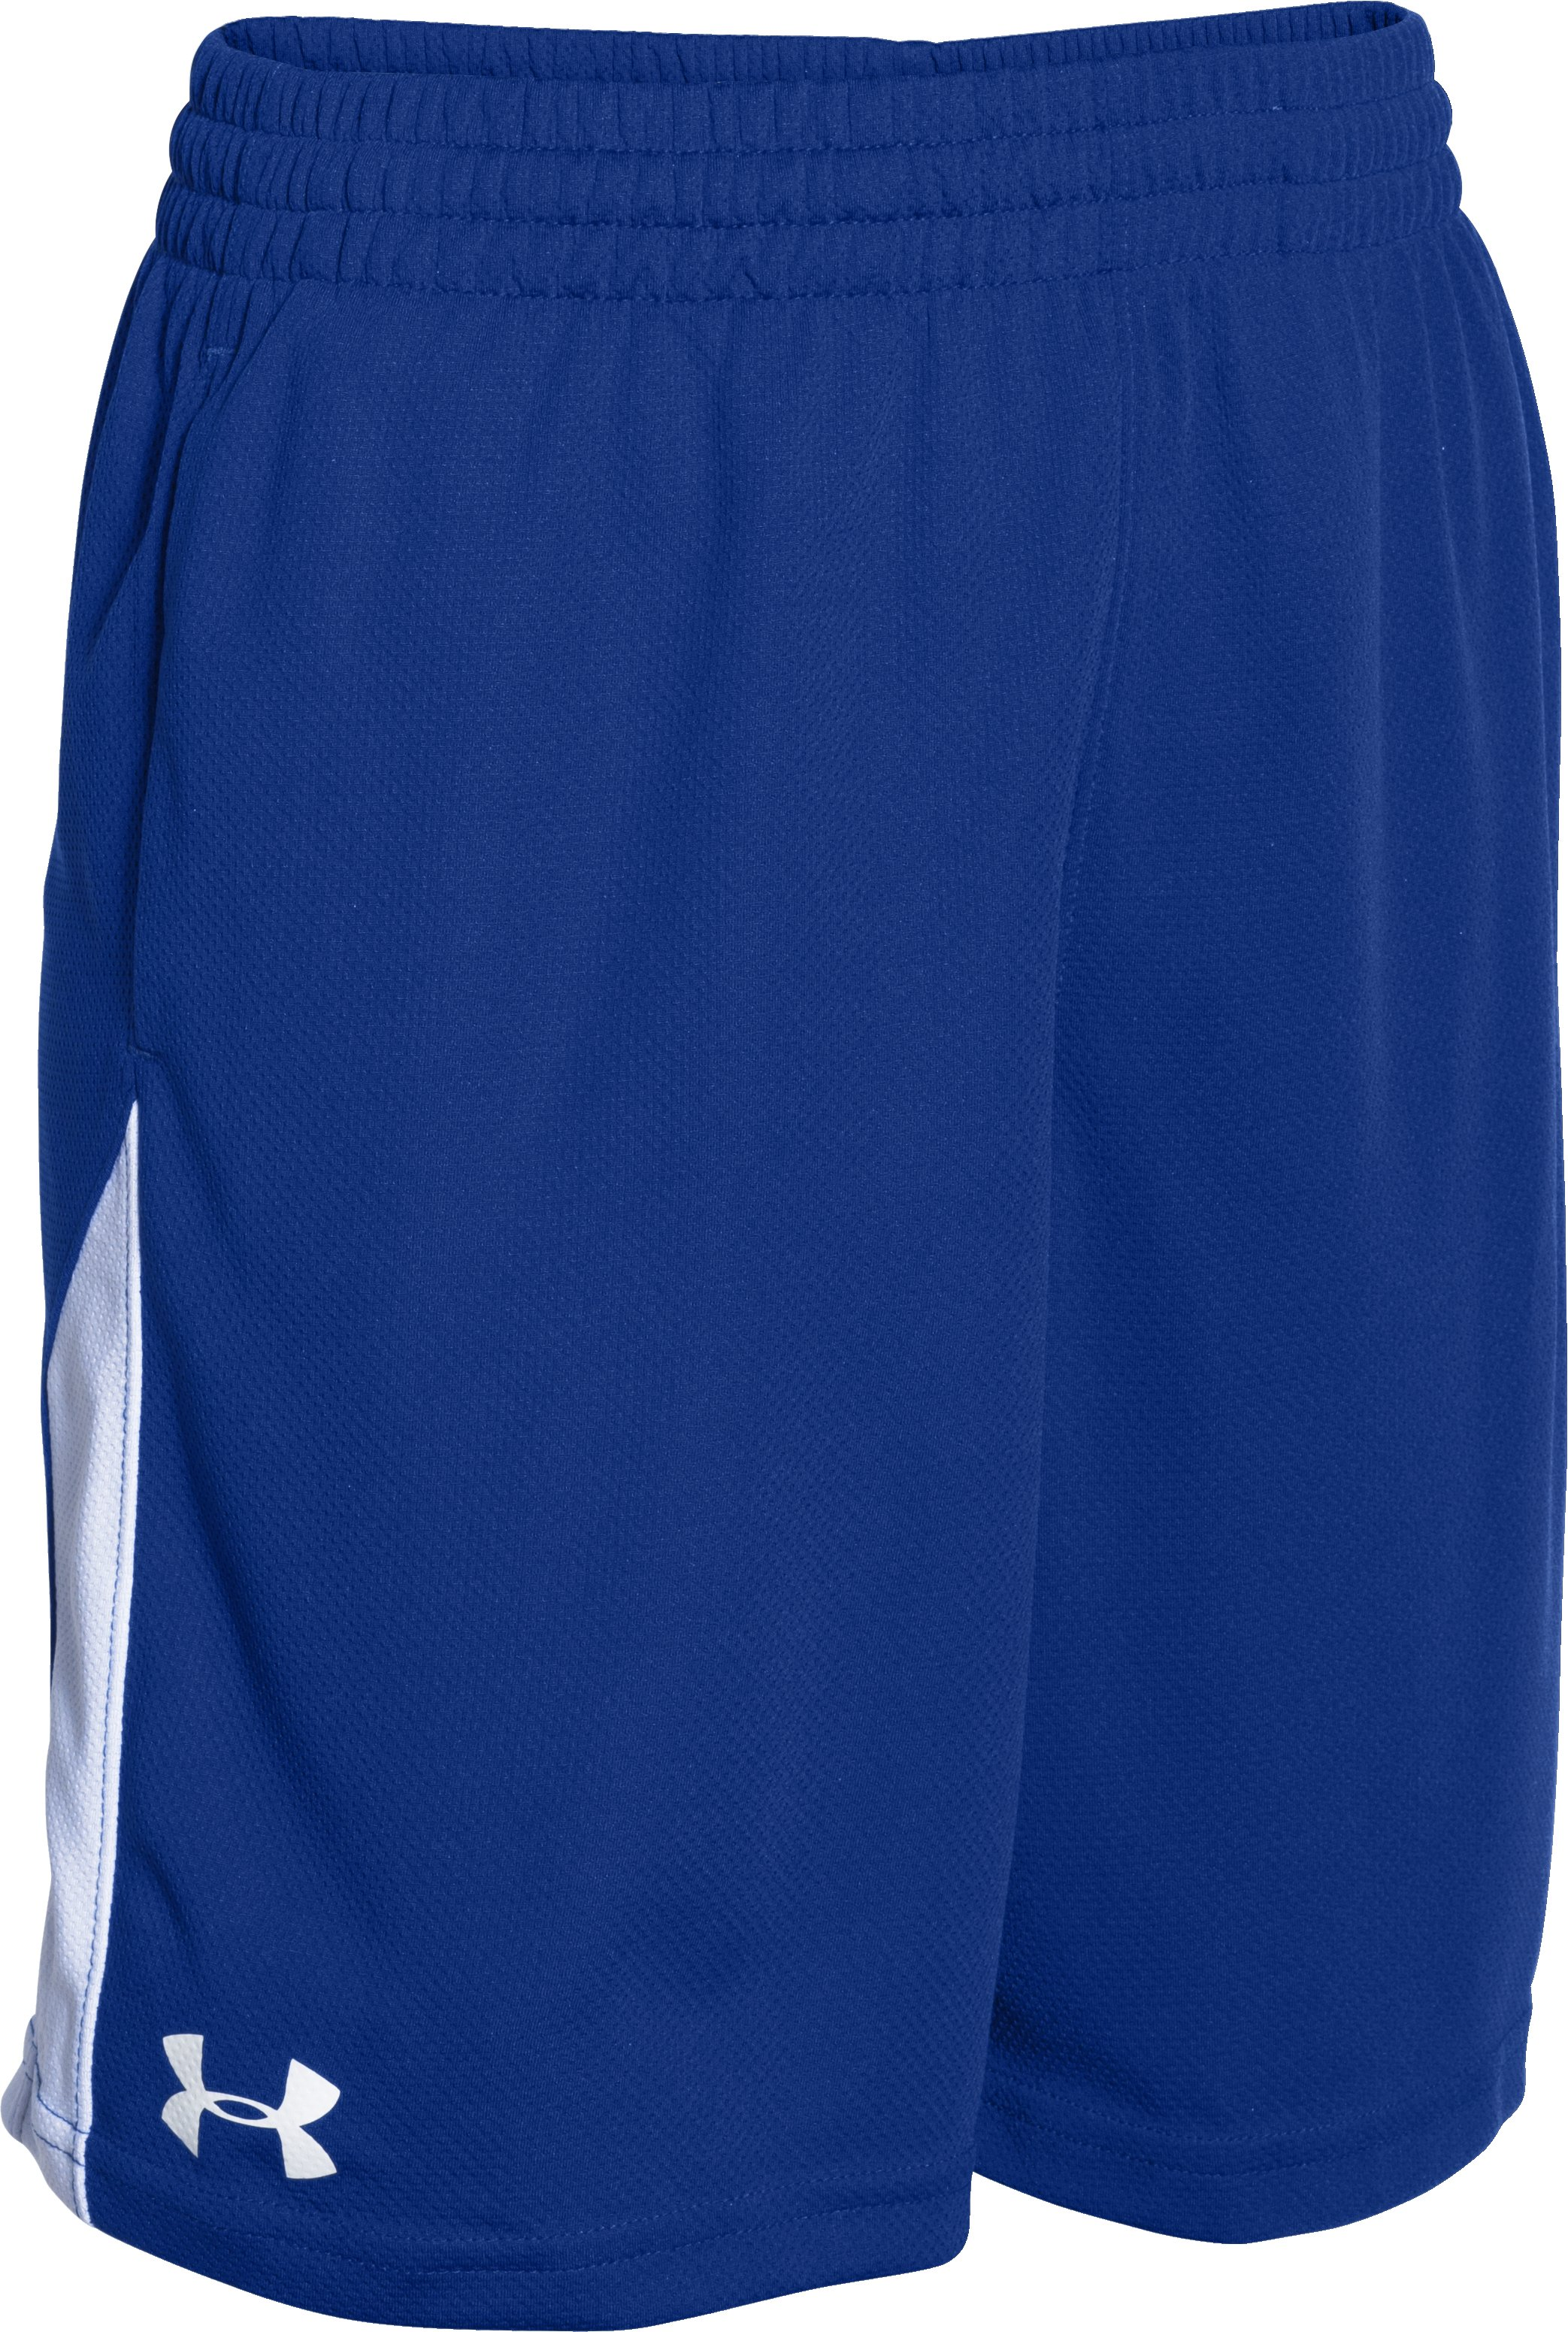 Boys' UA Assist Shorts, Royal,